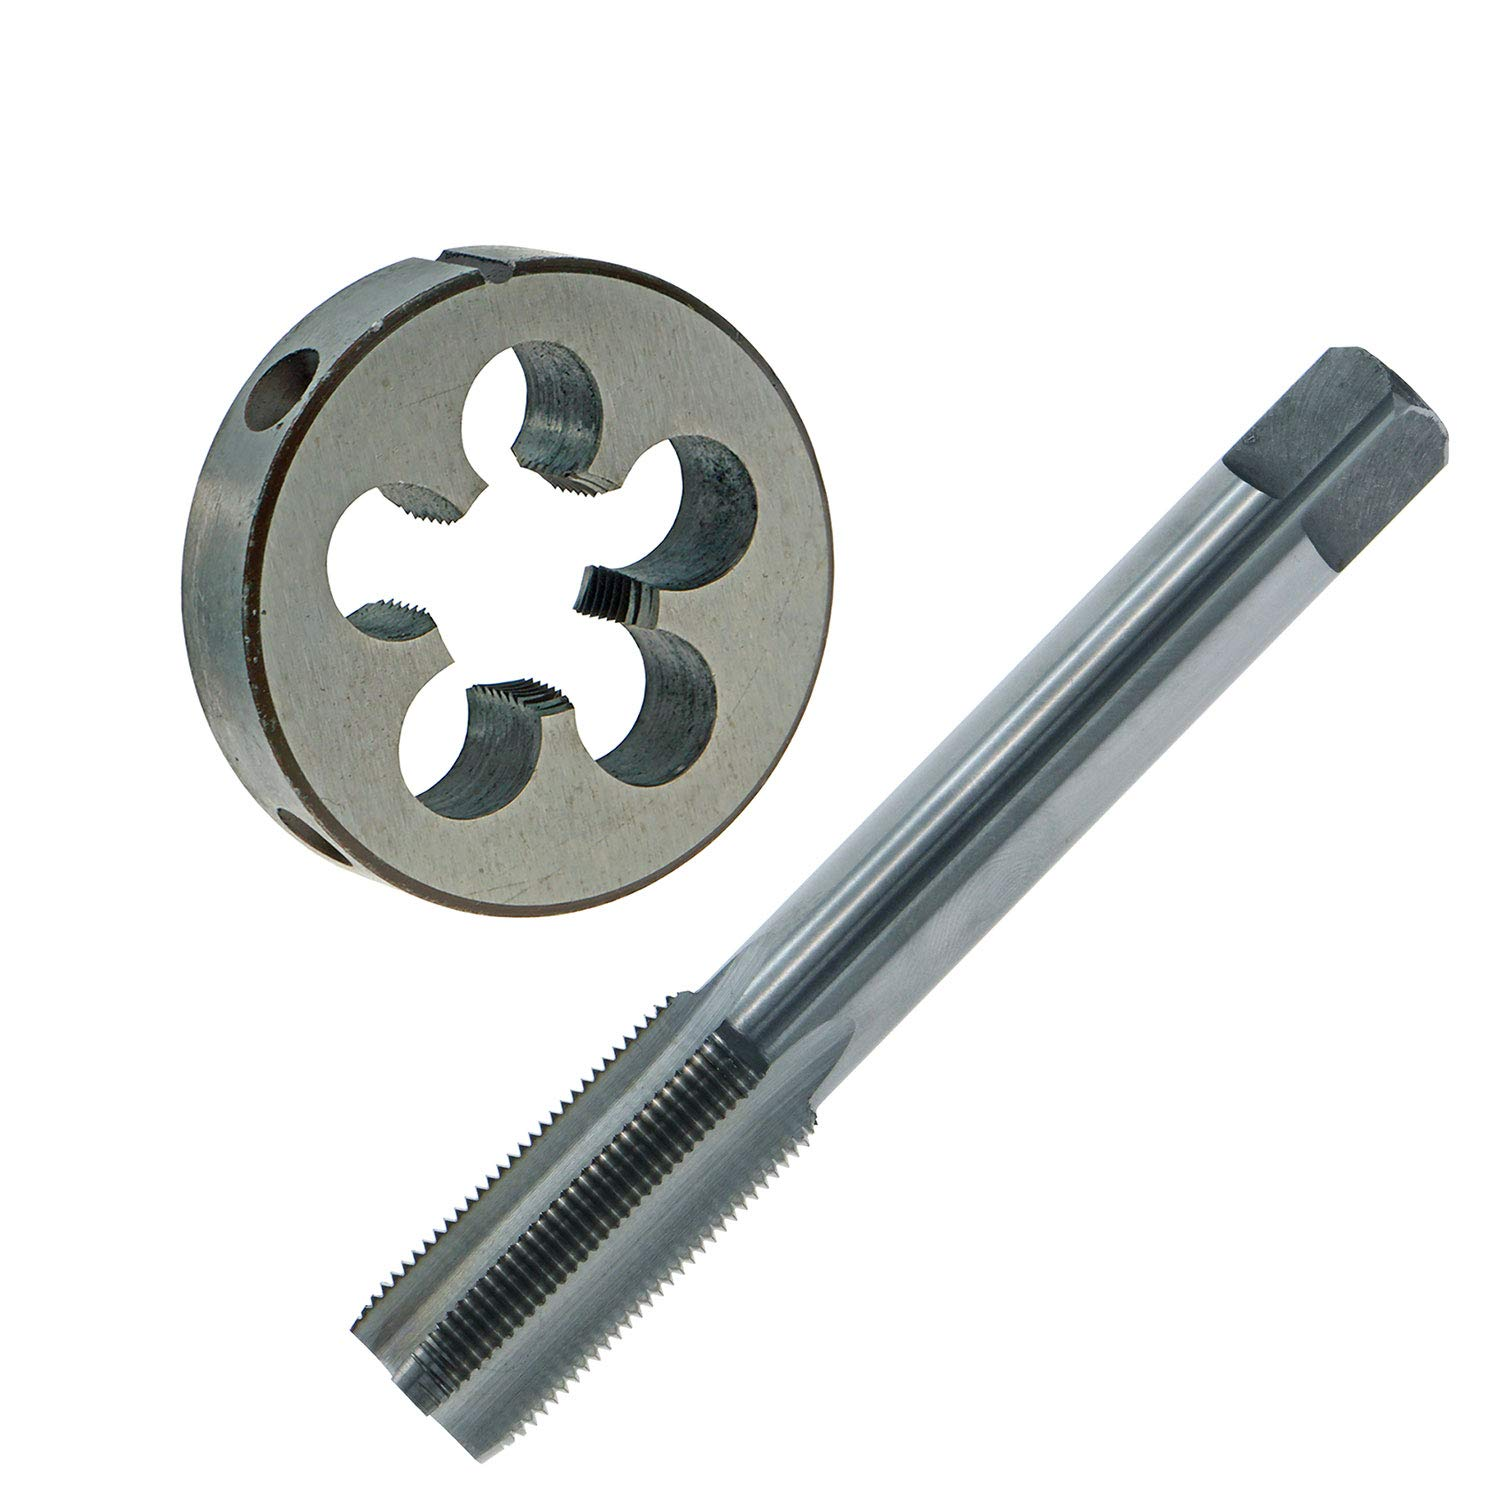 M18 x 1 mm Pitch Thread Metric Right Hand Die